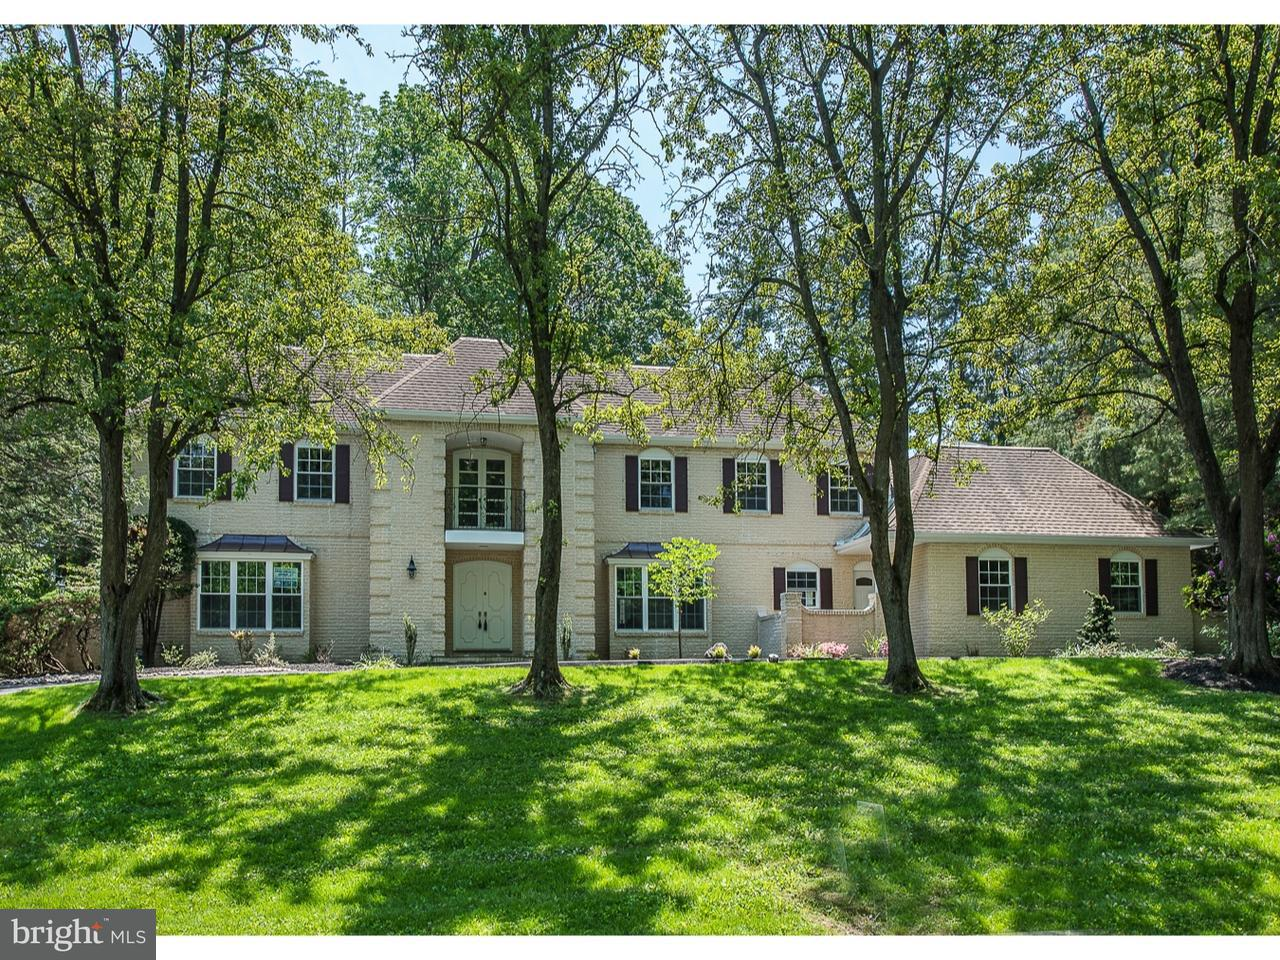 121 Quaker Lane Haverford, PA 19041